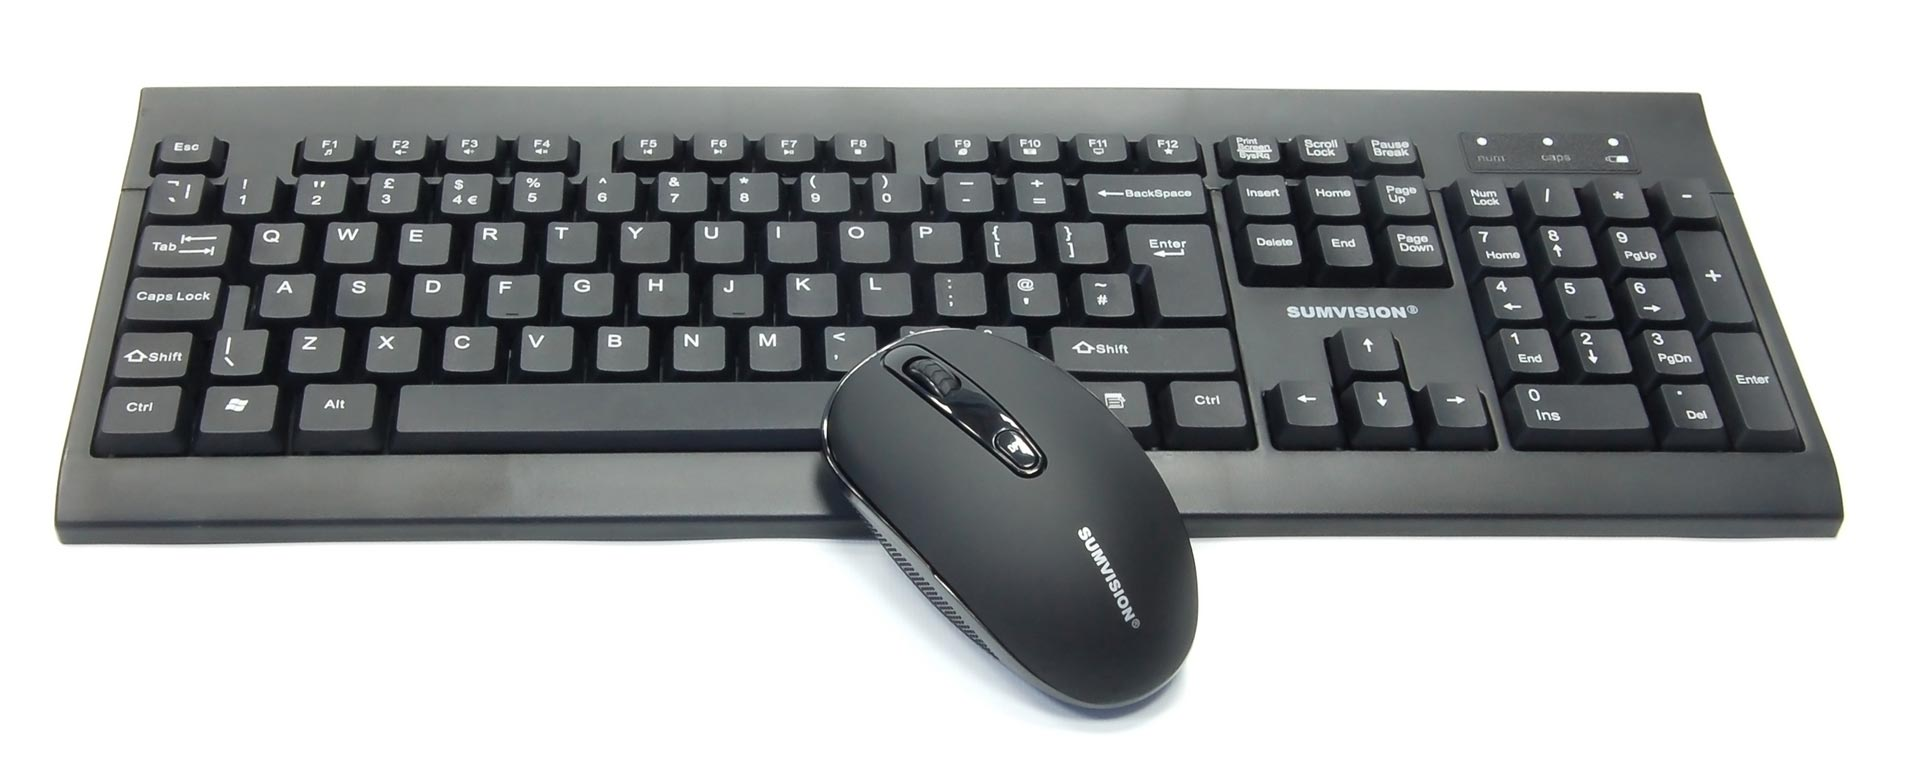 Find keyboard mouse set. Shop every store on the internet via ...